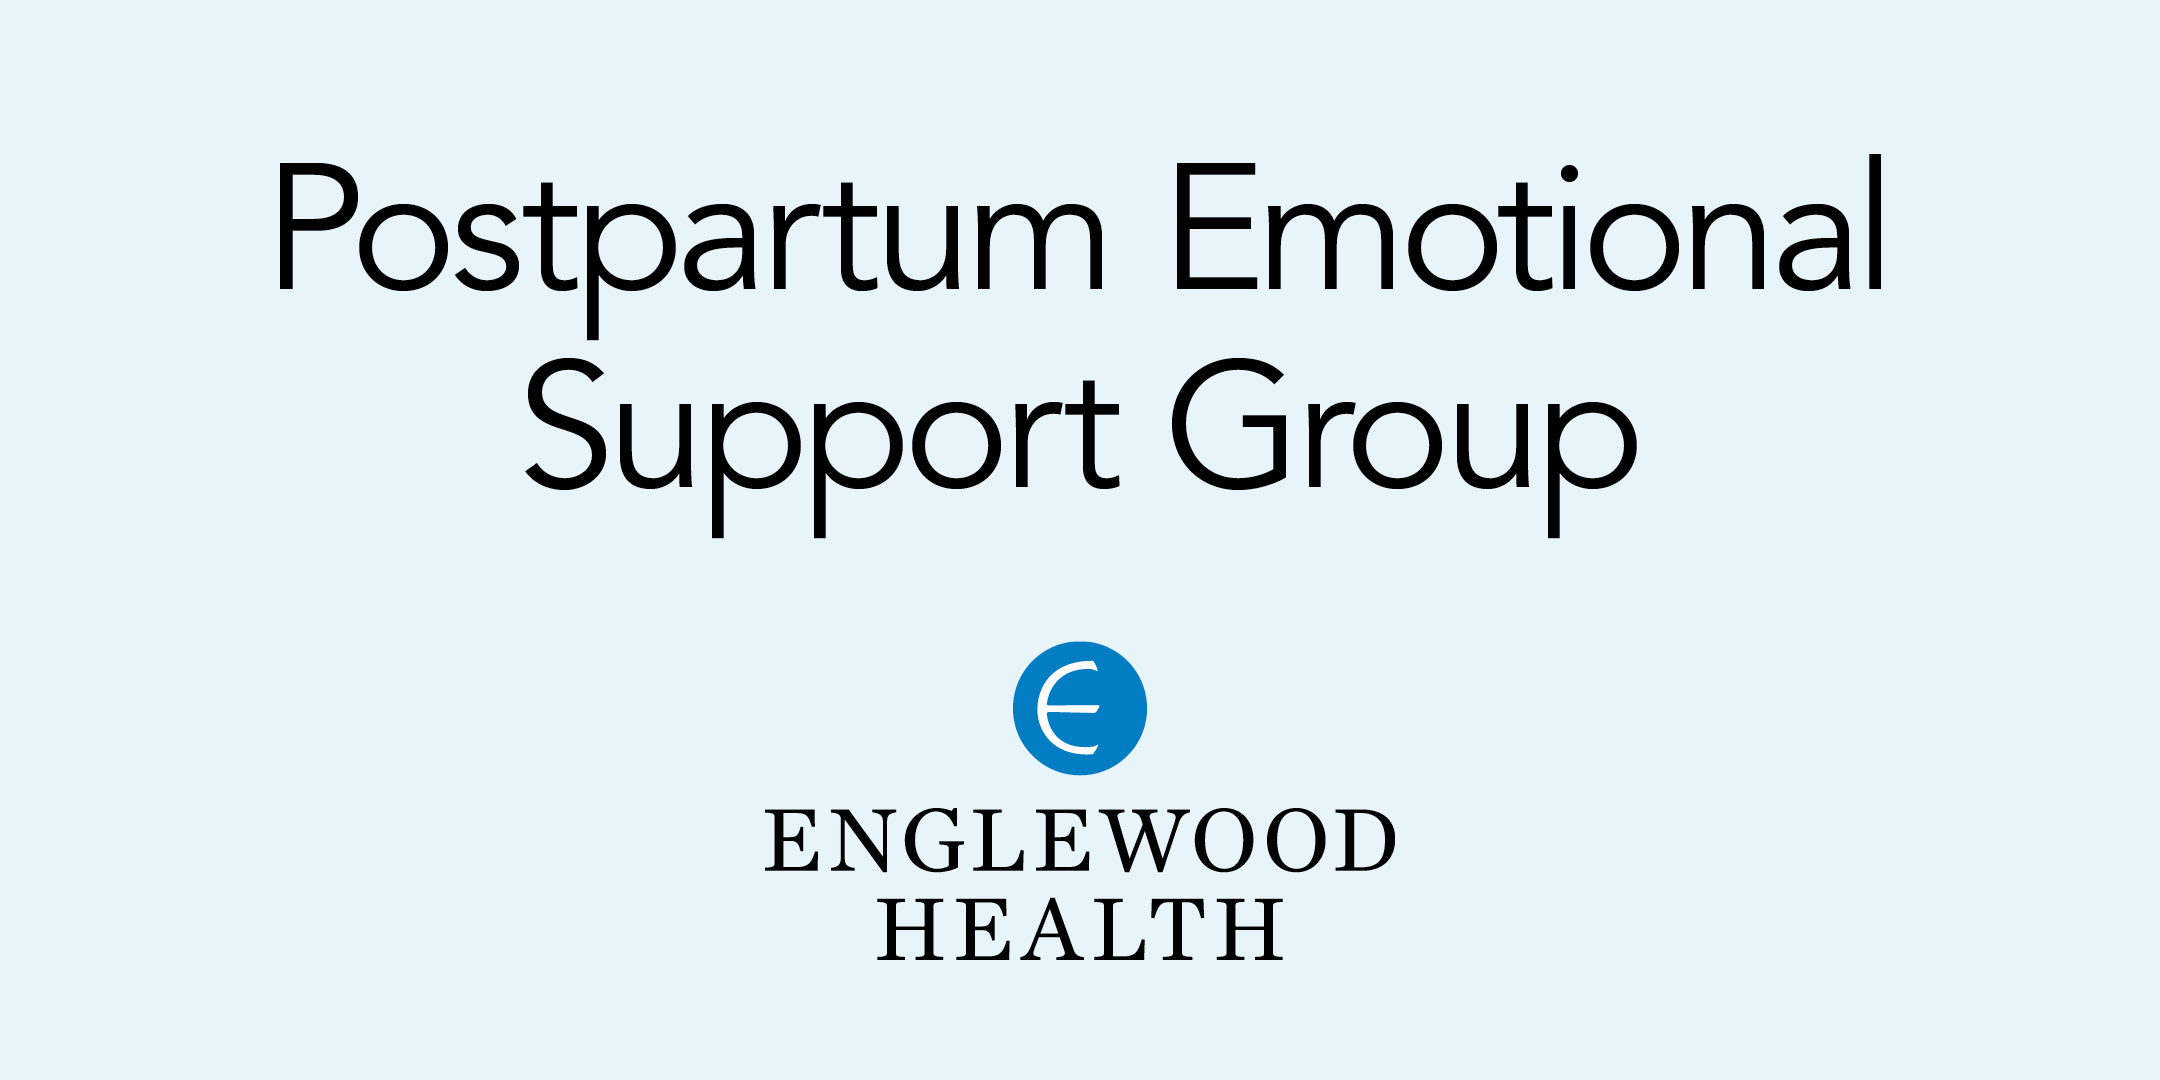 Postpartum Emotional Support Group